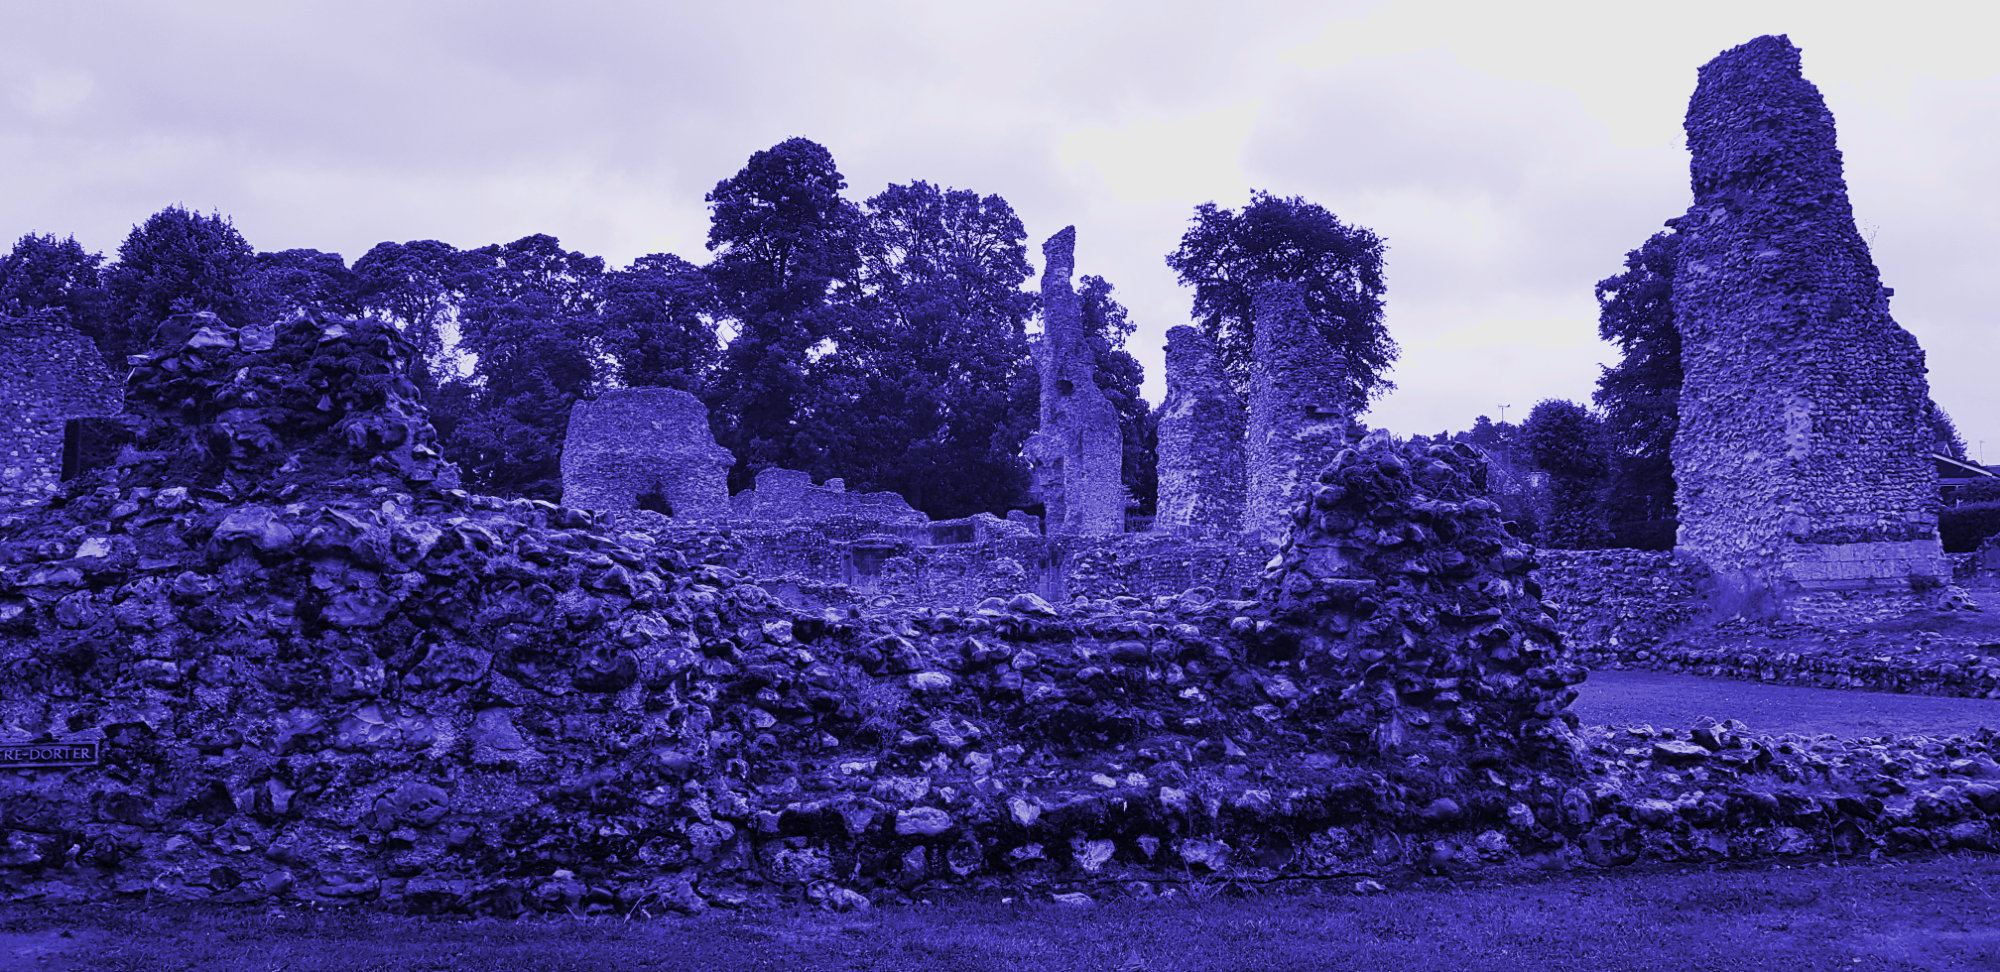 Episode 30 – Thetford Priory